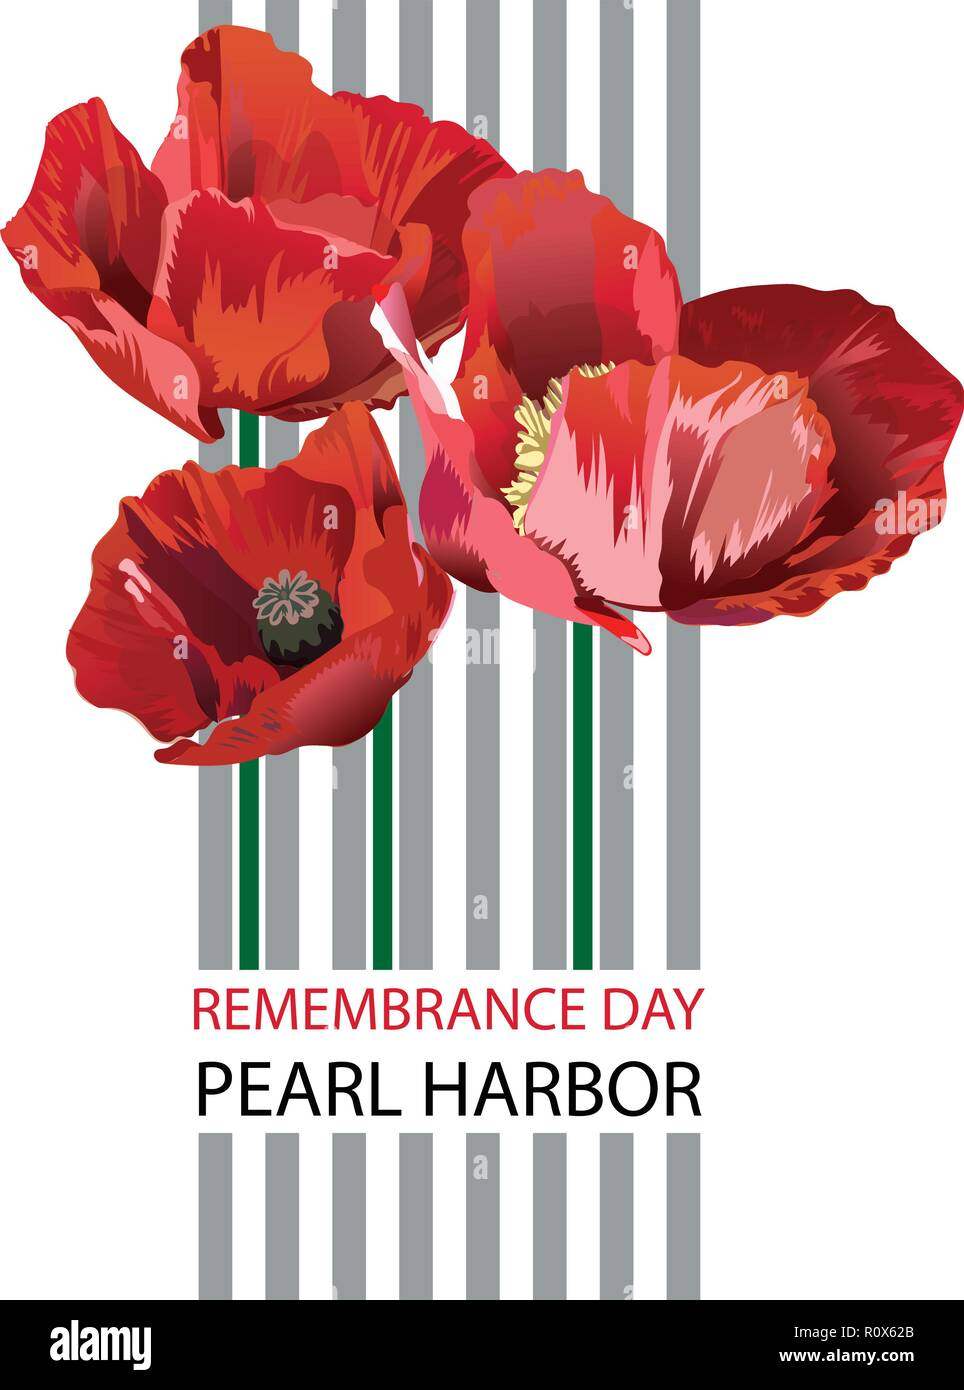 Vector illustration of a Banner for Pearl Harbor Remembrance Day. - Stock Vector